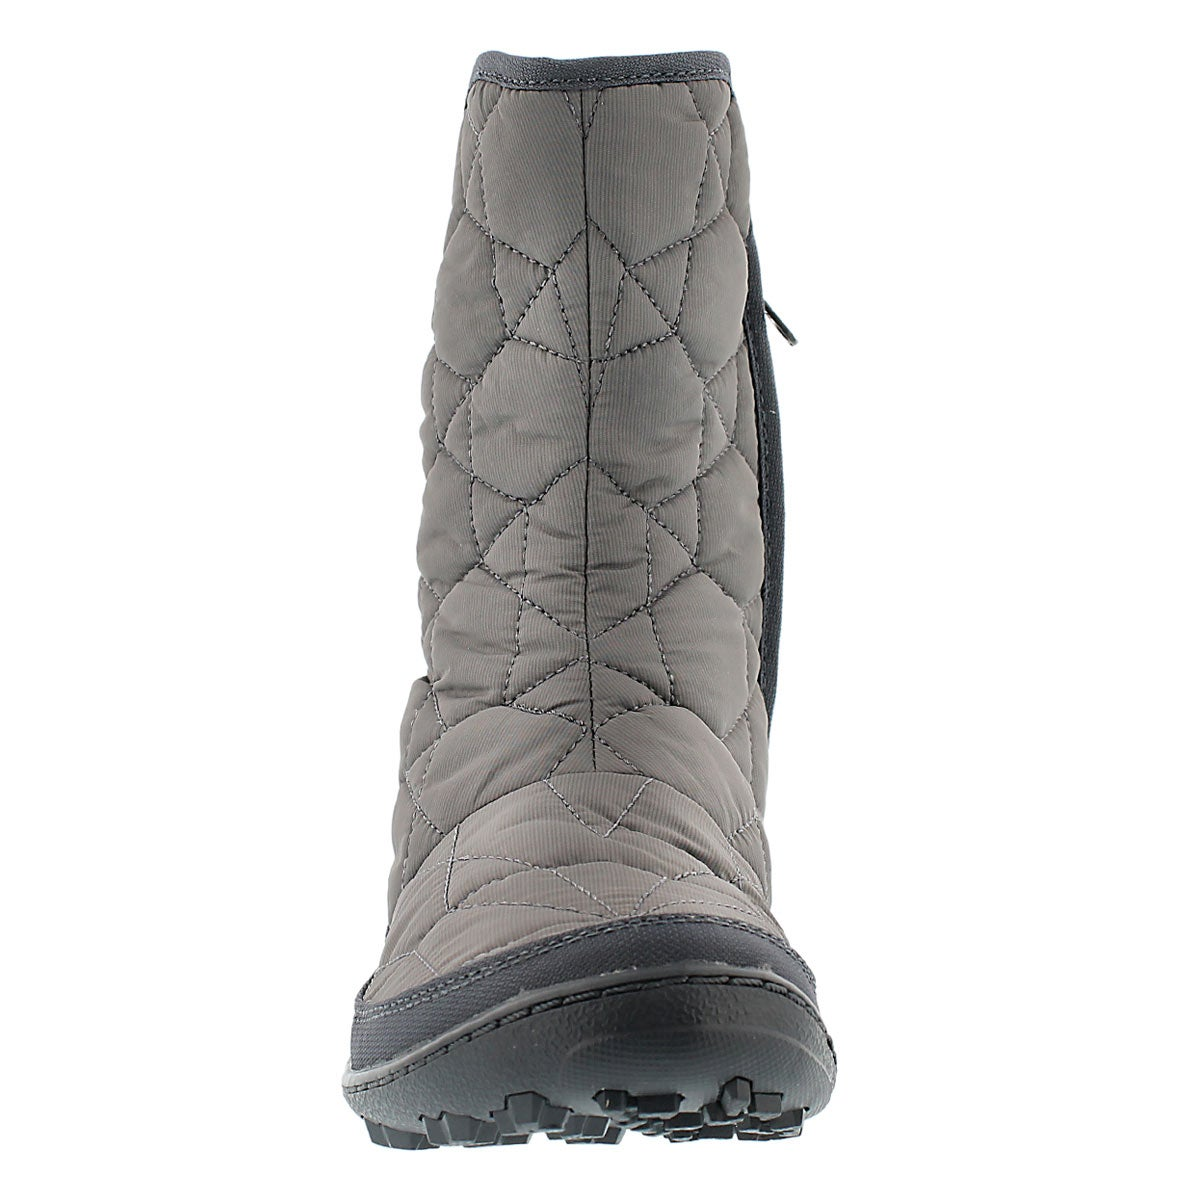 Lds Minx Slip II grey pull on wnter boot